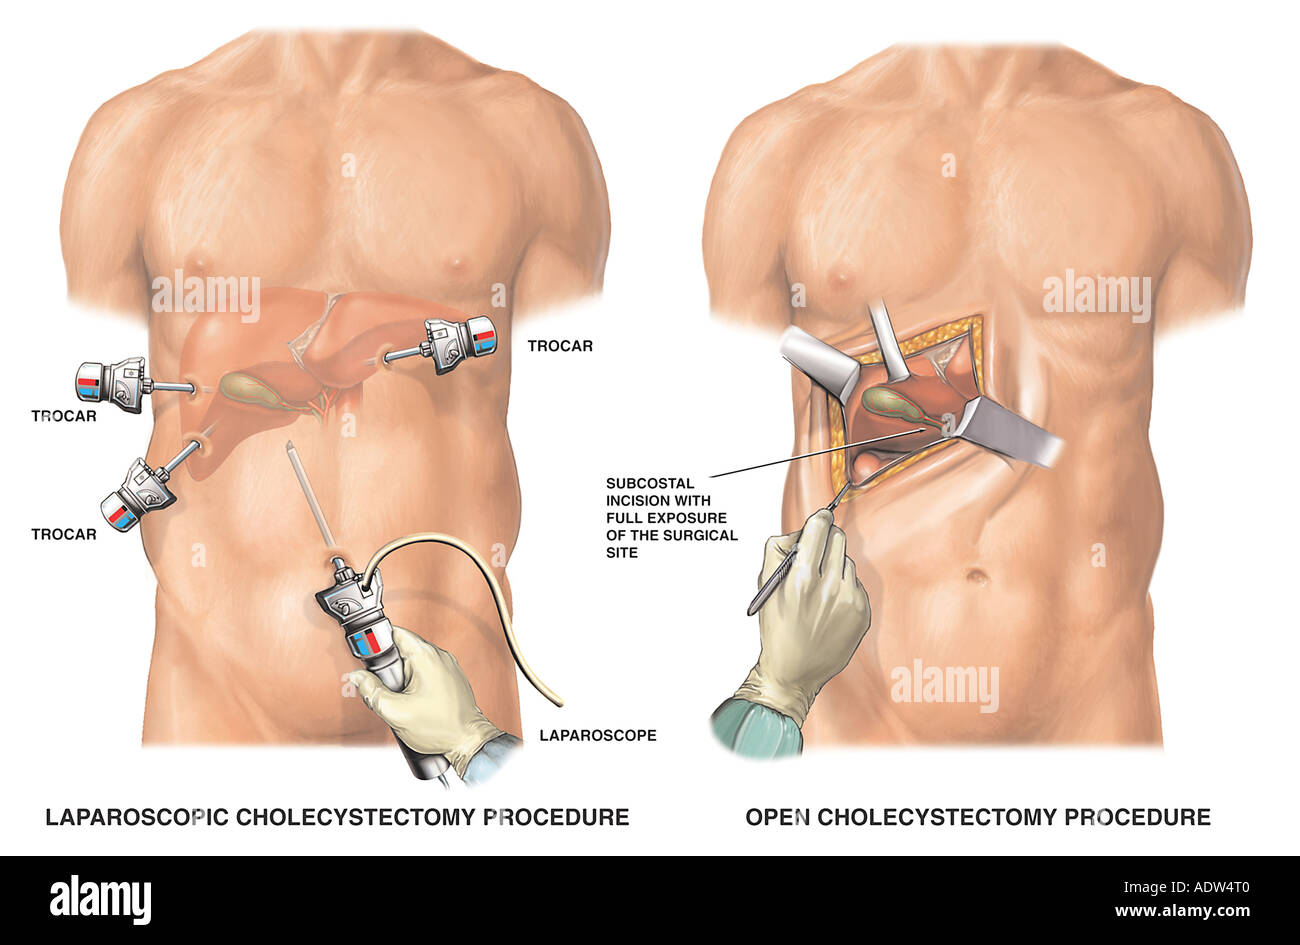 Gallbladder Surgery Laparoscopic Cholecystectomy vs Open Cholecystectomy Stock Photo